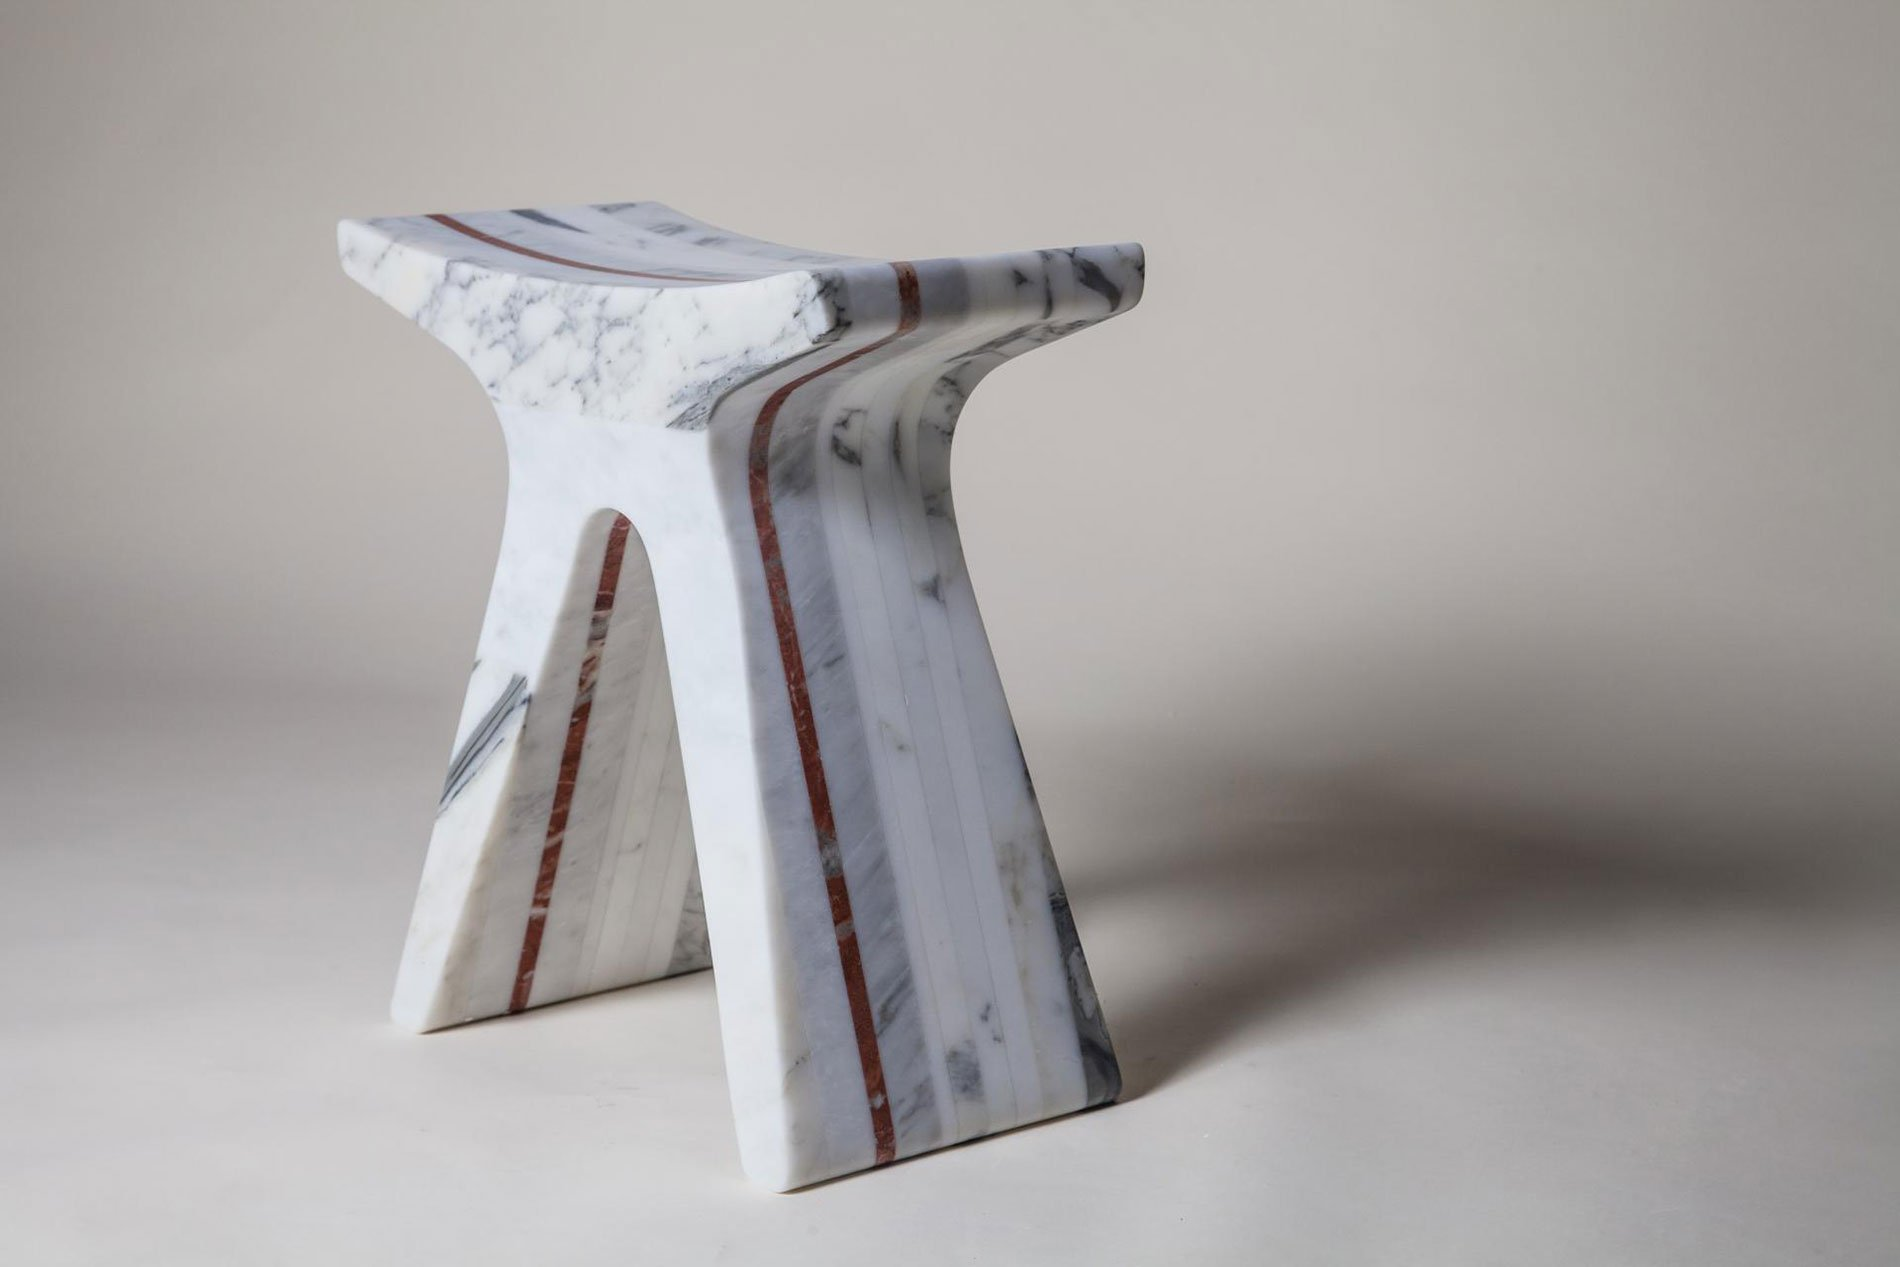 pigreco-marble-and-wood-stools-by-francesco-meda-3